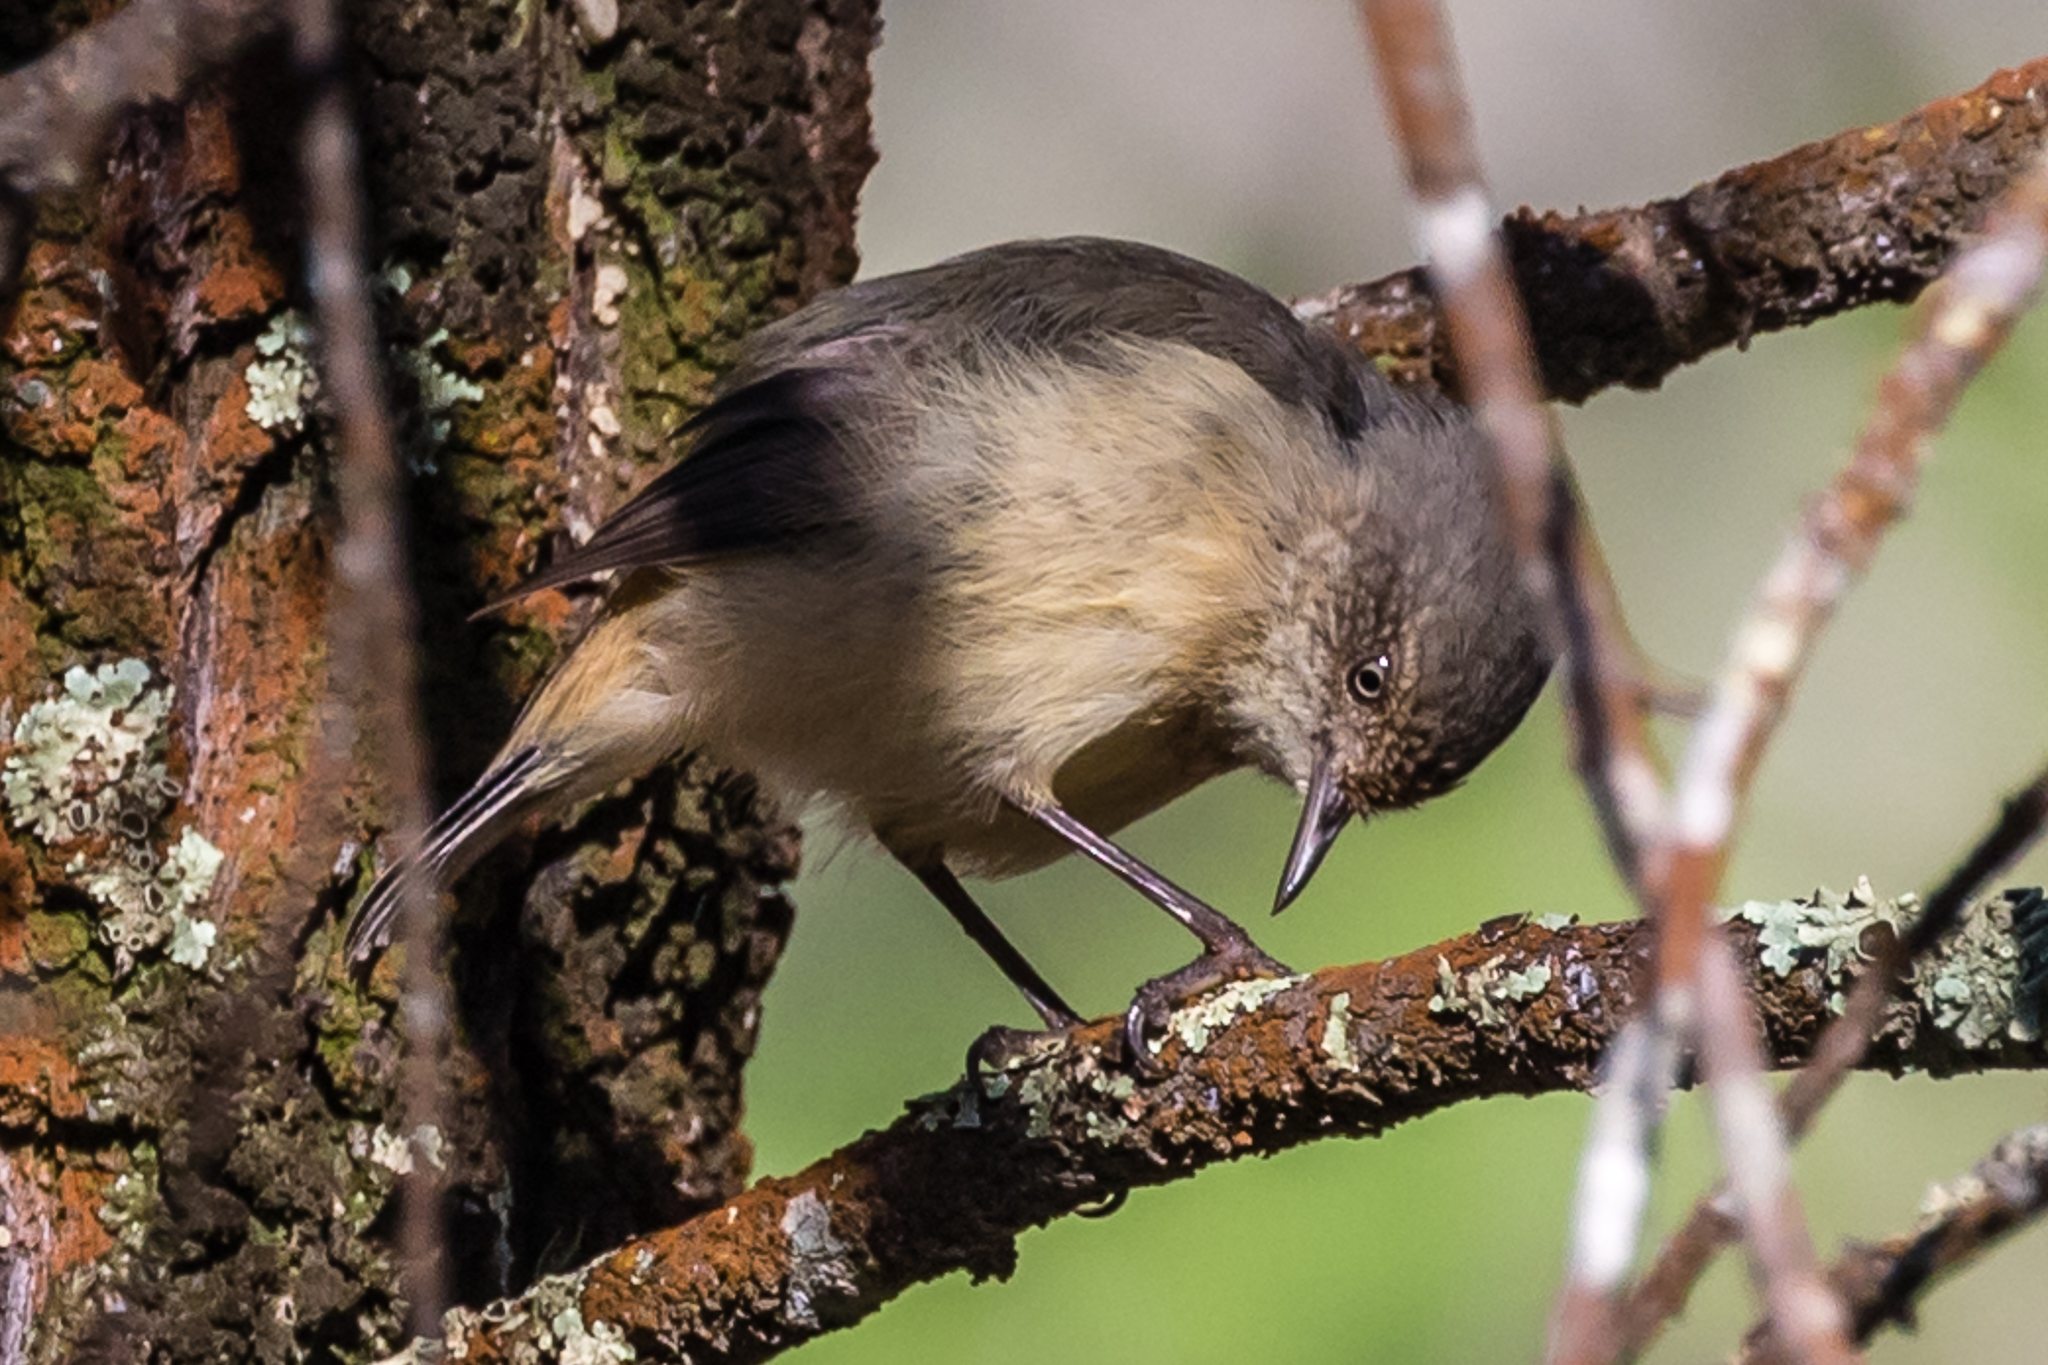 Buff-rumped Thornbills (here seen at Company Dam) join other Thornbills, Weebills, Pardalotes and other small birds that control insects and pests of the woodlands. Buff-rumped Thornbills prefer the margins of forests, living and feeding in the lower branches of scrubs.